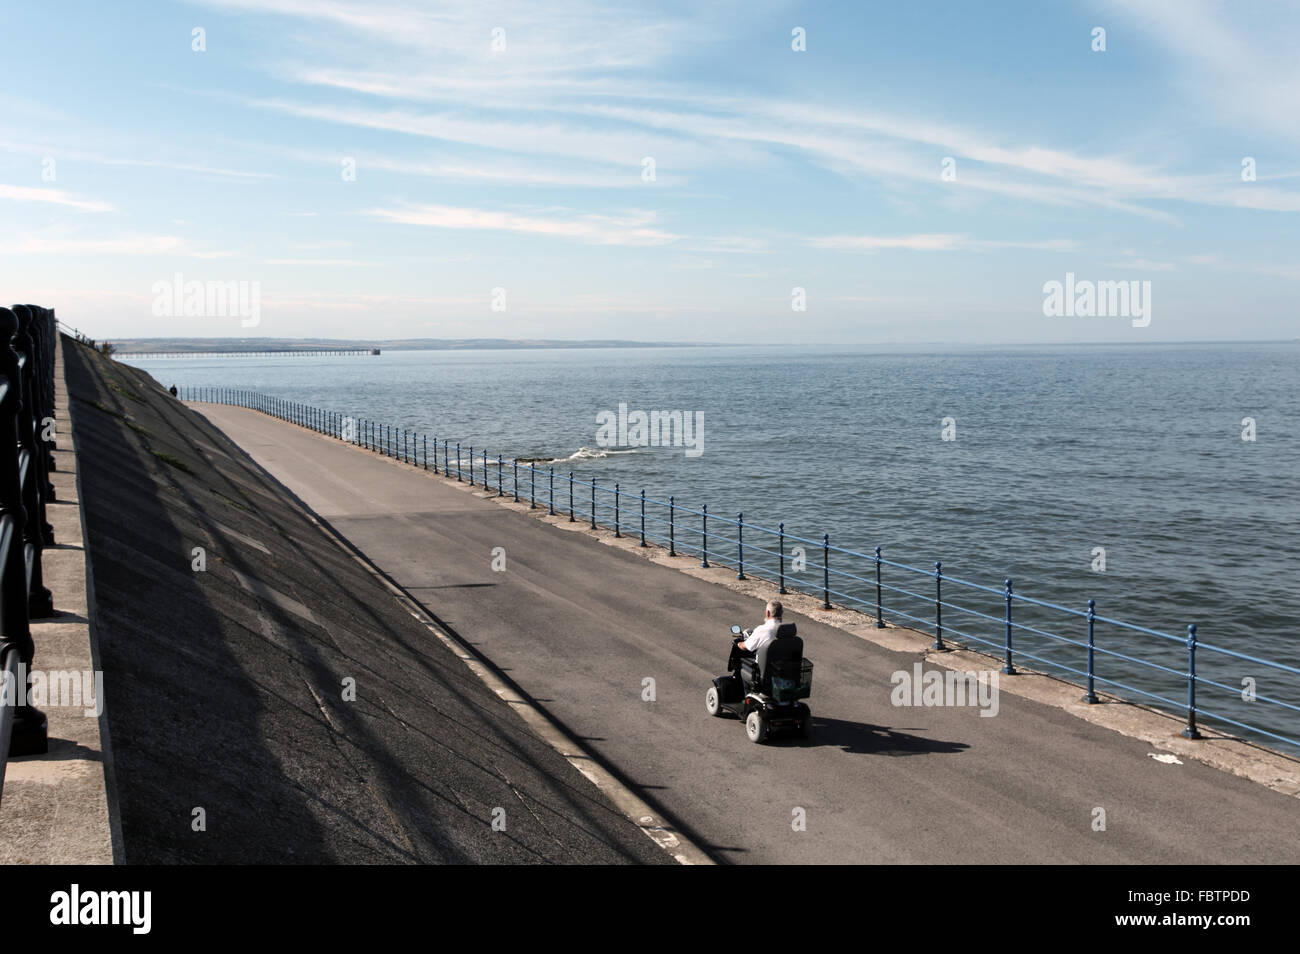 Hartlepool. A man driving a mobility scooter by the sea. - Stock Image